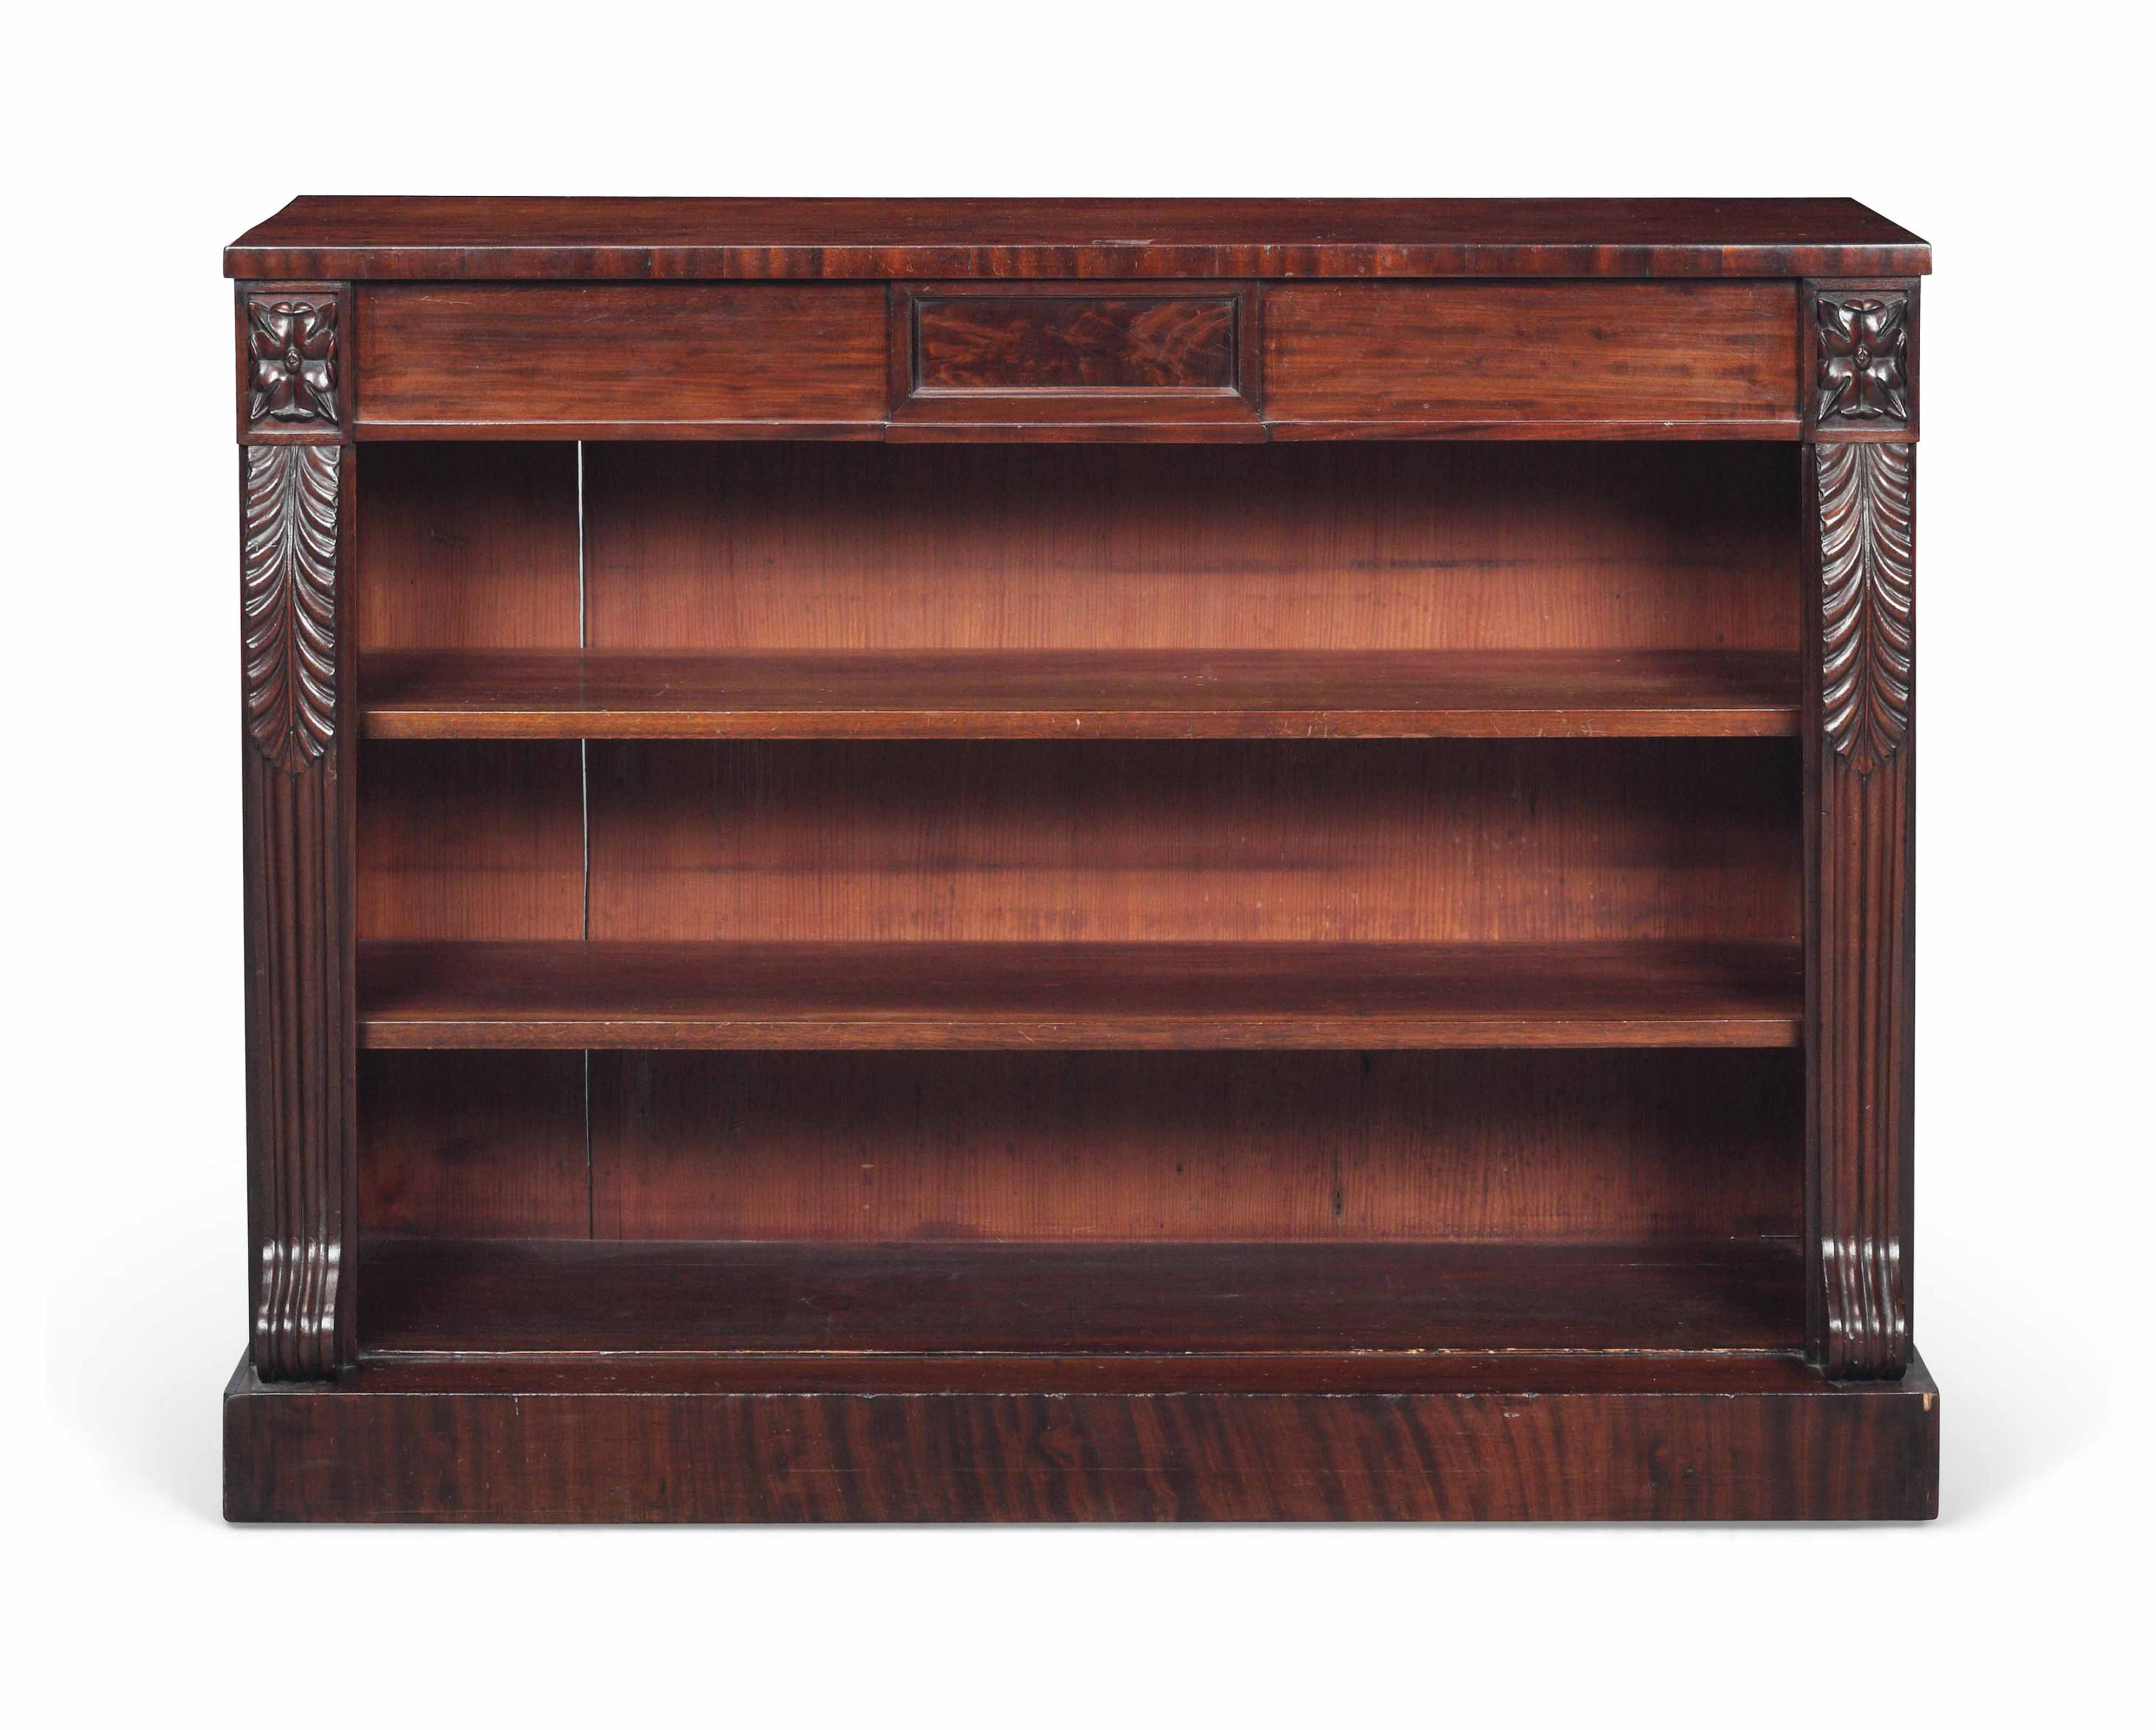 AN EARLY VICTORIAN MAHOGANY OP